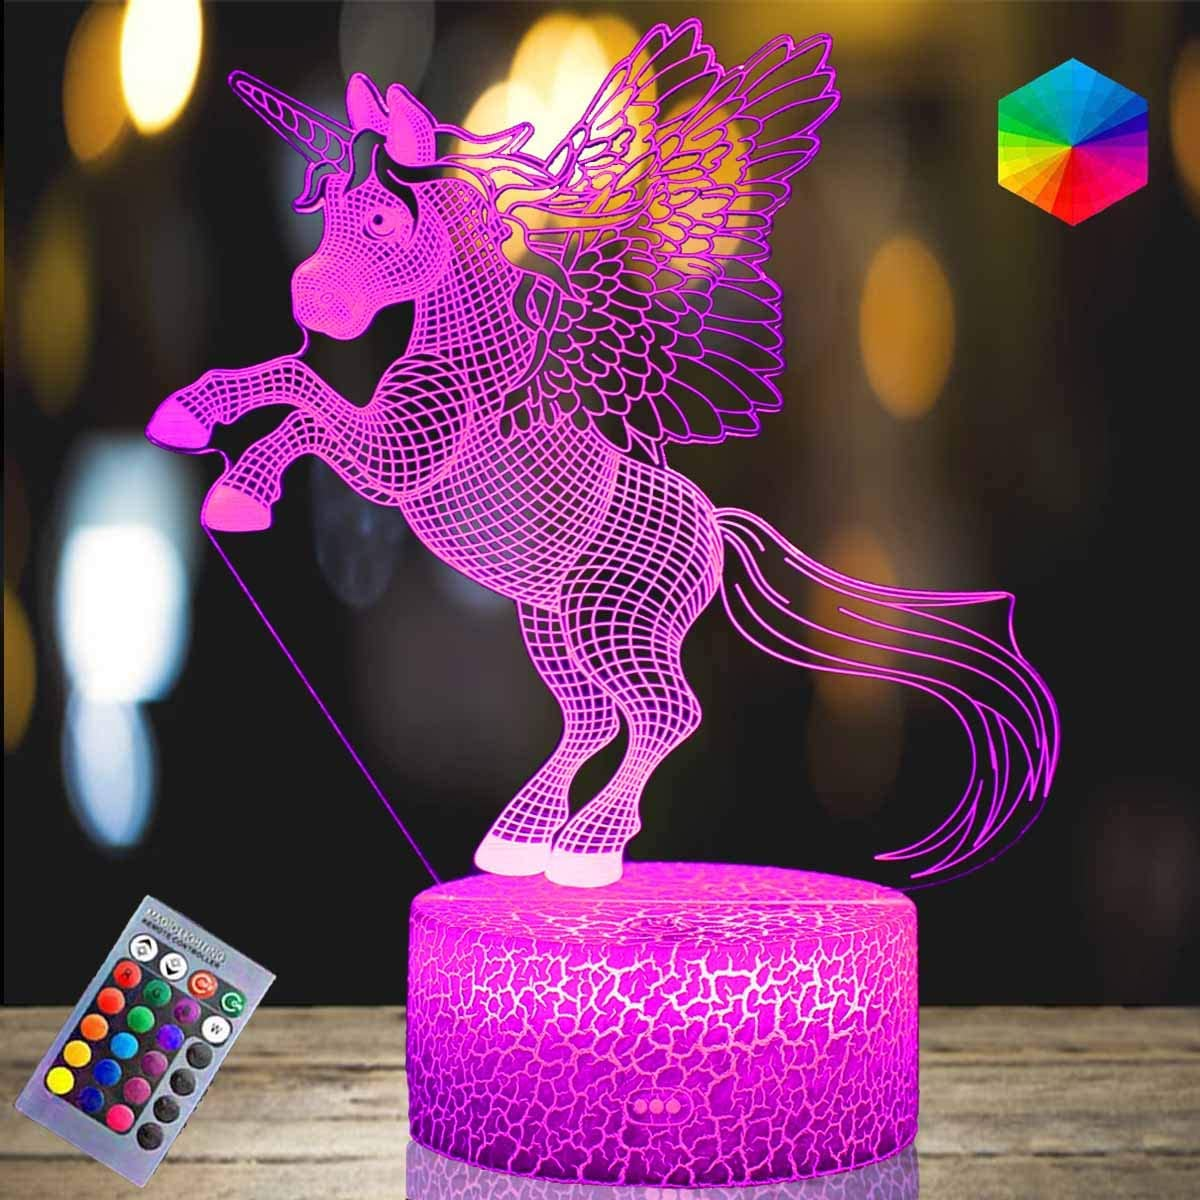 Unicorn Night Light for Girls 16 Colors Changing Dimmable Unicorn Lamps for Girls Bedroom Touch&Remote Control Unicorn Toys for 1 2 3 4 5 6 7 8 Year Old Girl Gifts